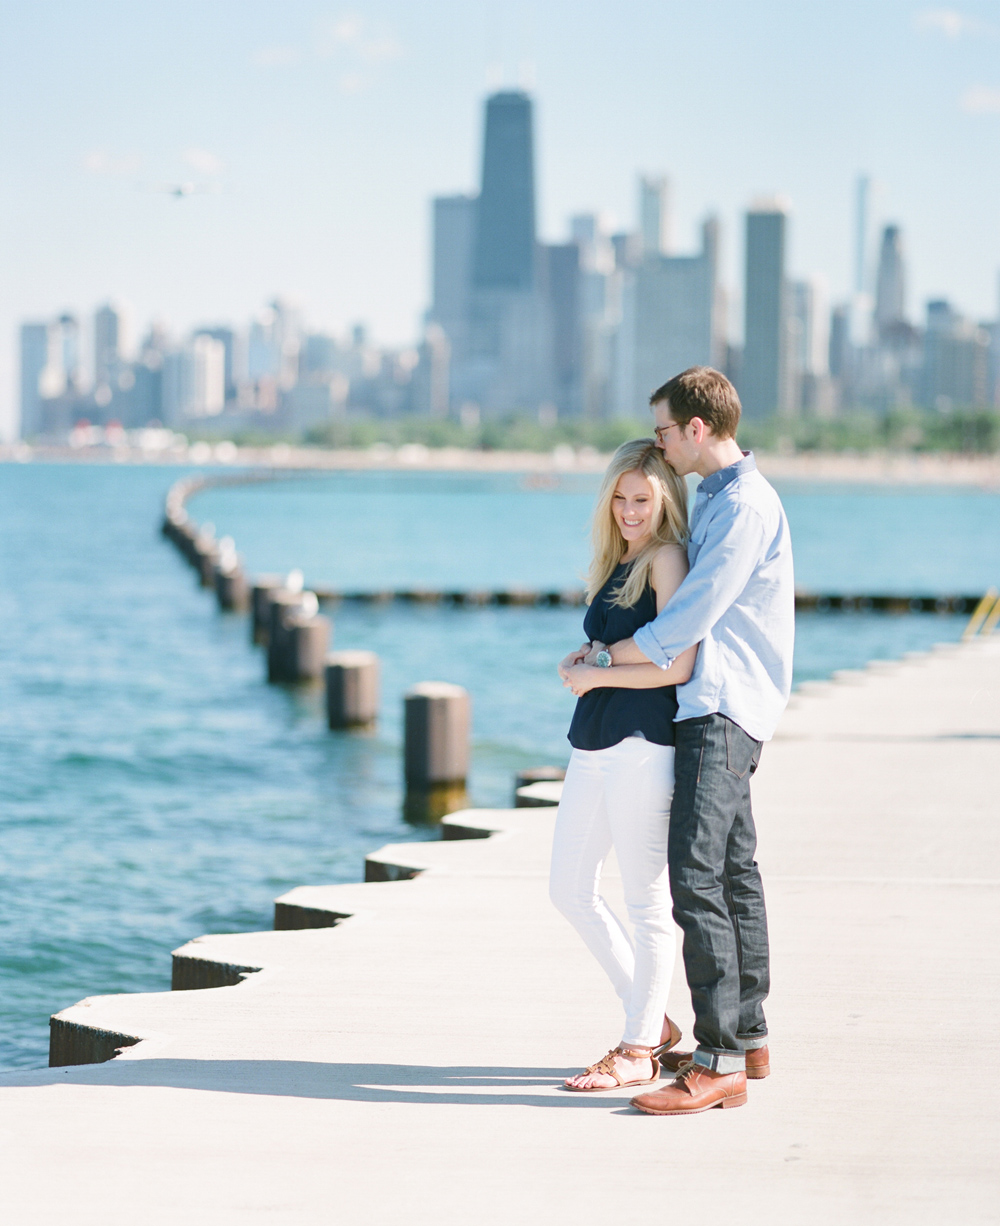 Chicago_Engagement_Photography_Lincoln_Park_011.jpg